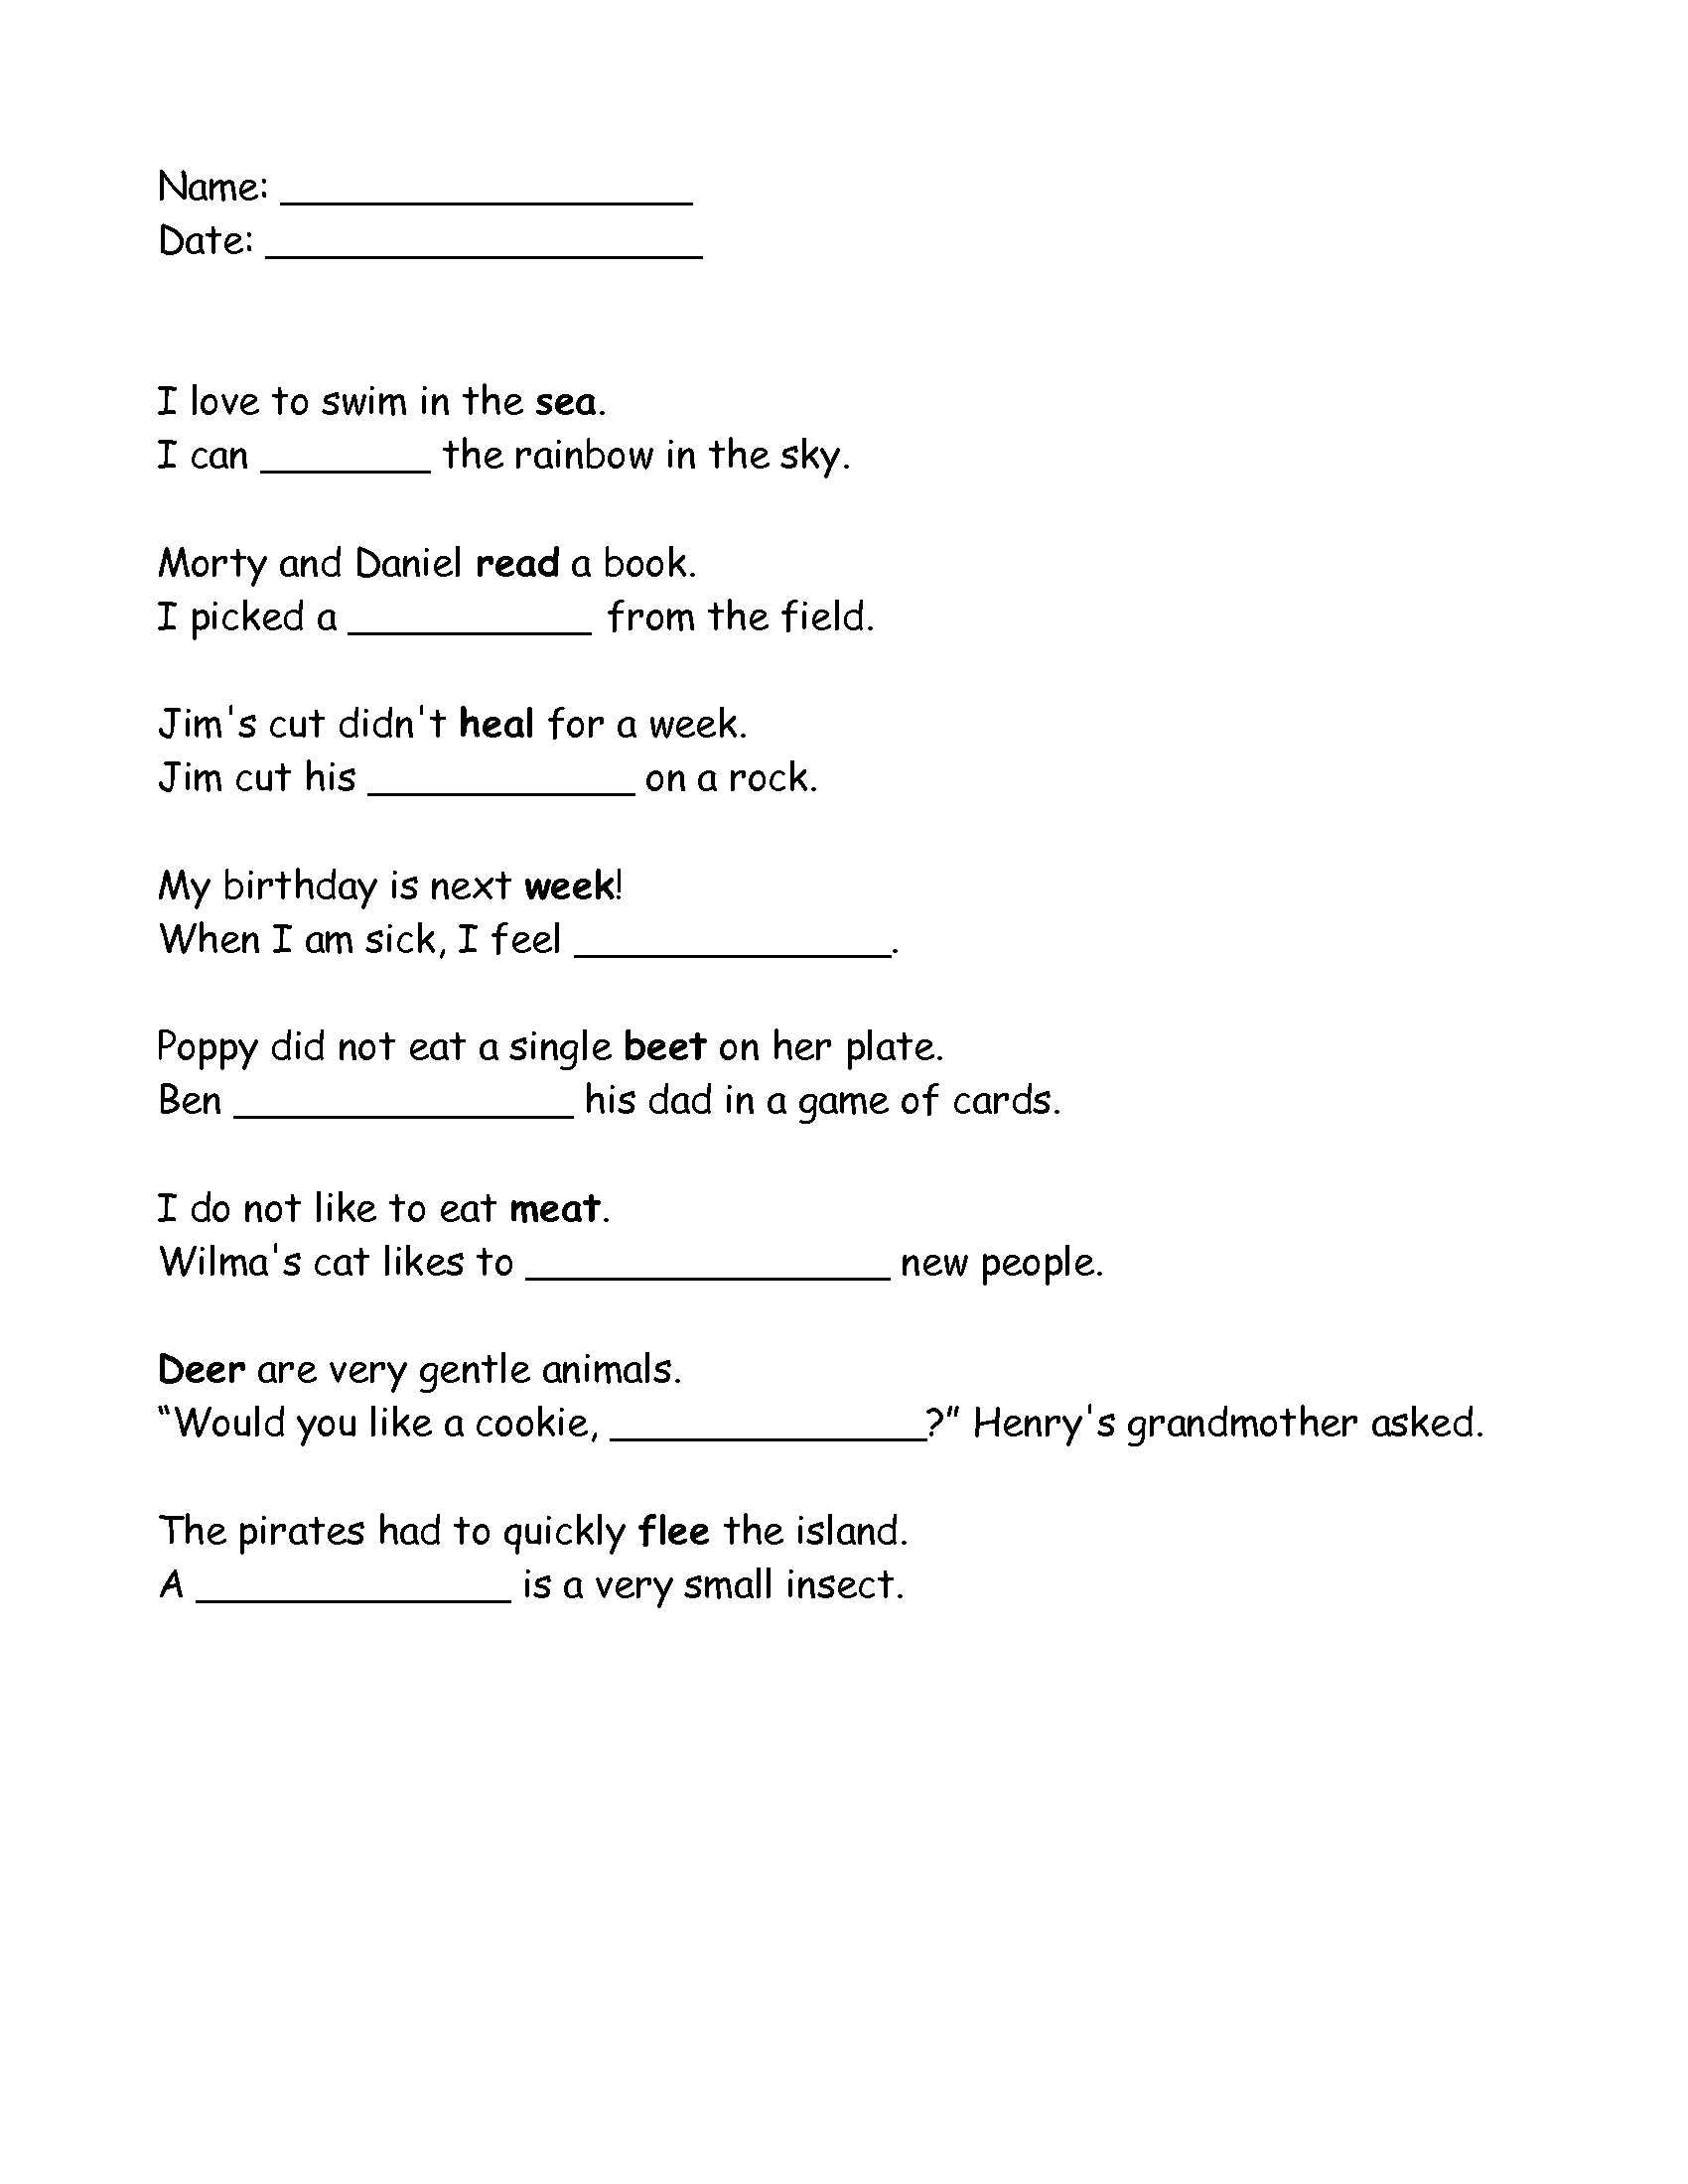 Grade 2 Homophones Ee And Ea Worksheet That I Made Click On Image